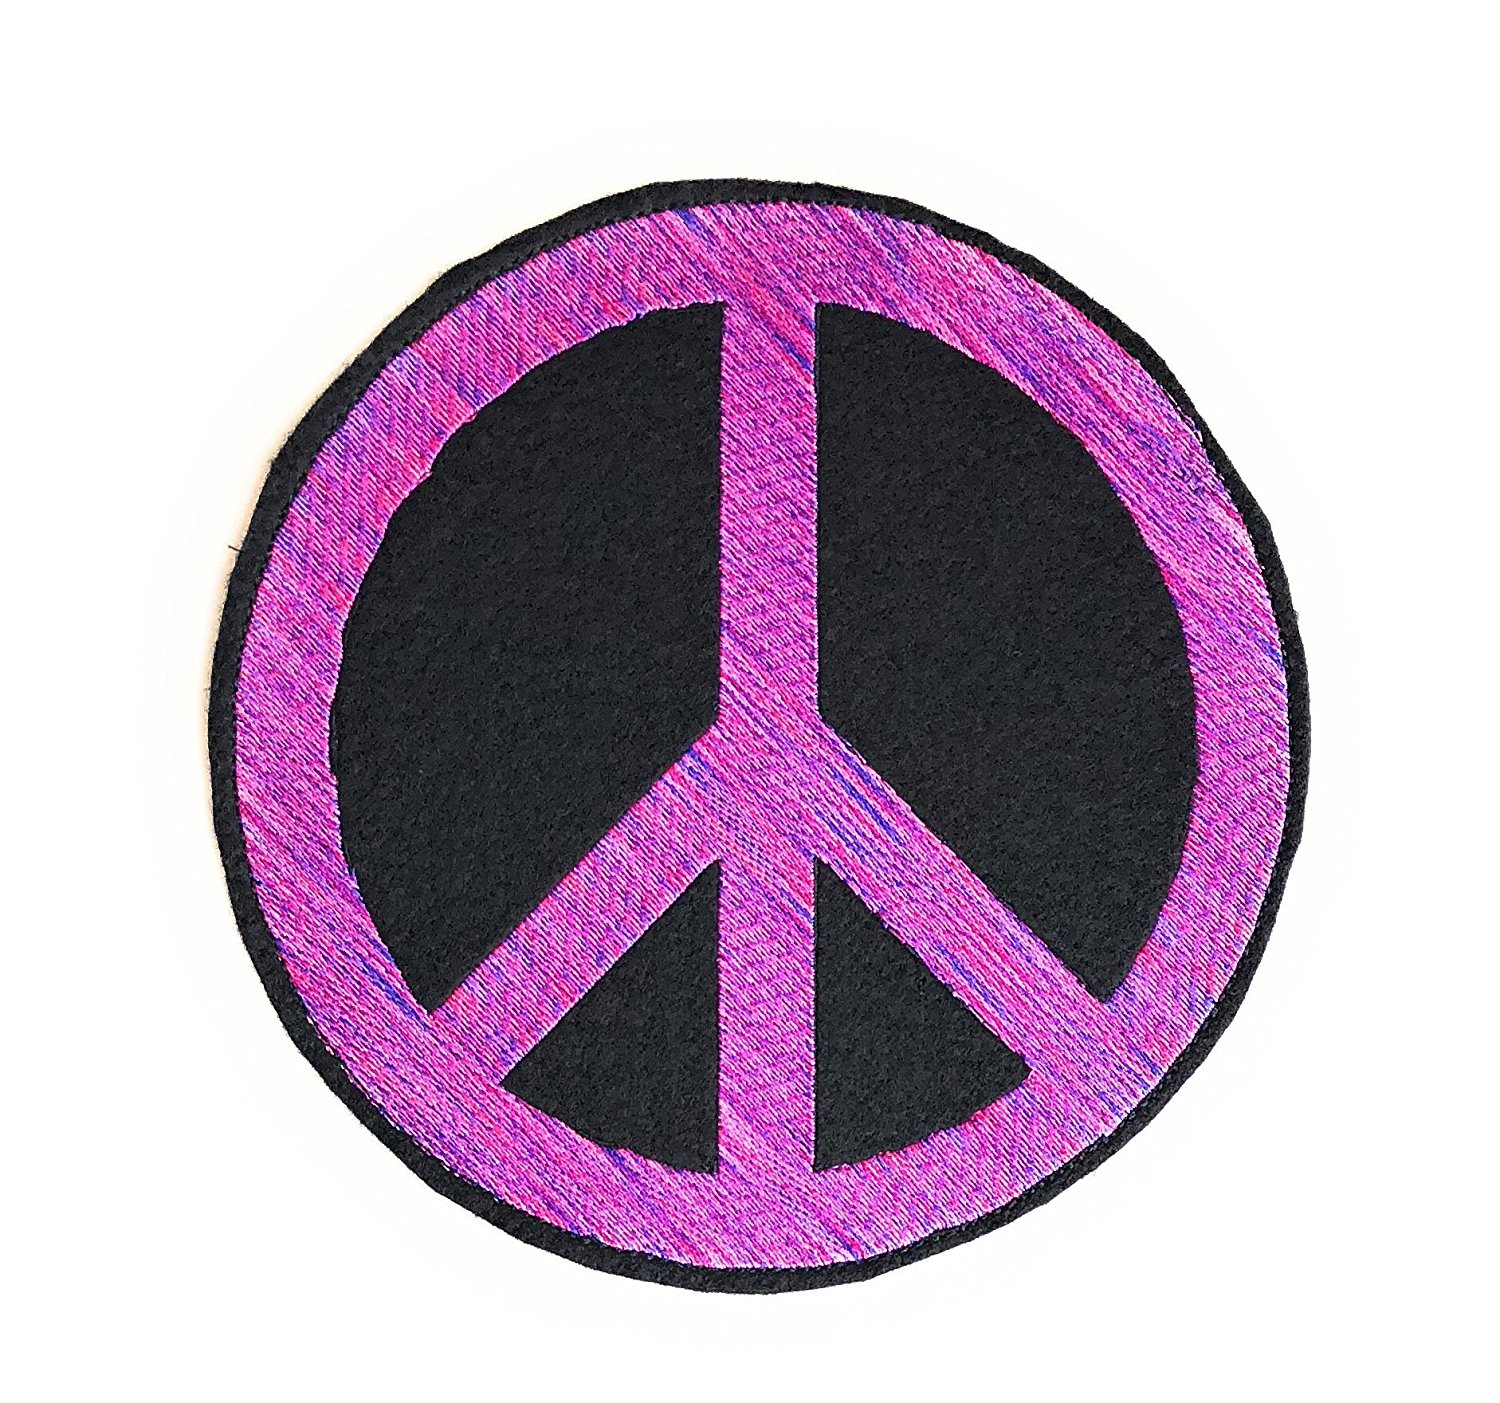 Pink Peace Sign Patch, Peace Symbol Patch, Peace Sign Sew on Patch, Large Patch 7.5 inches in Variegated Pink Made in USA